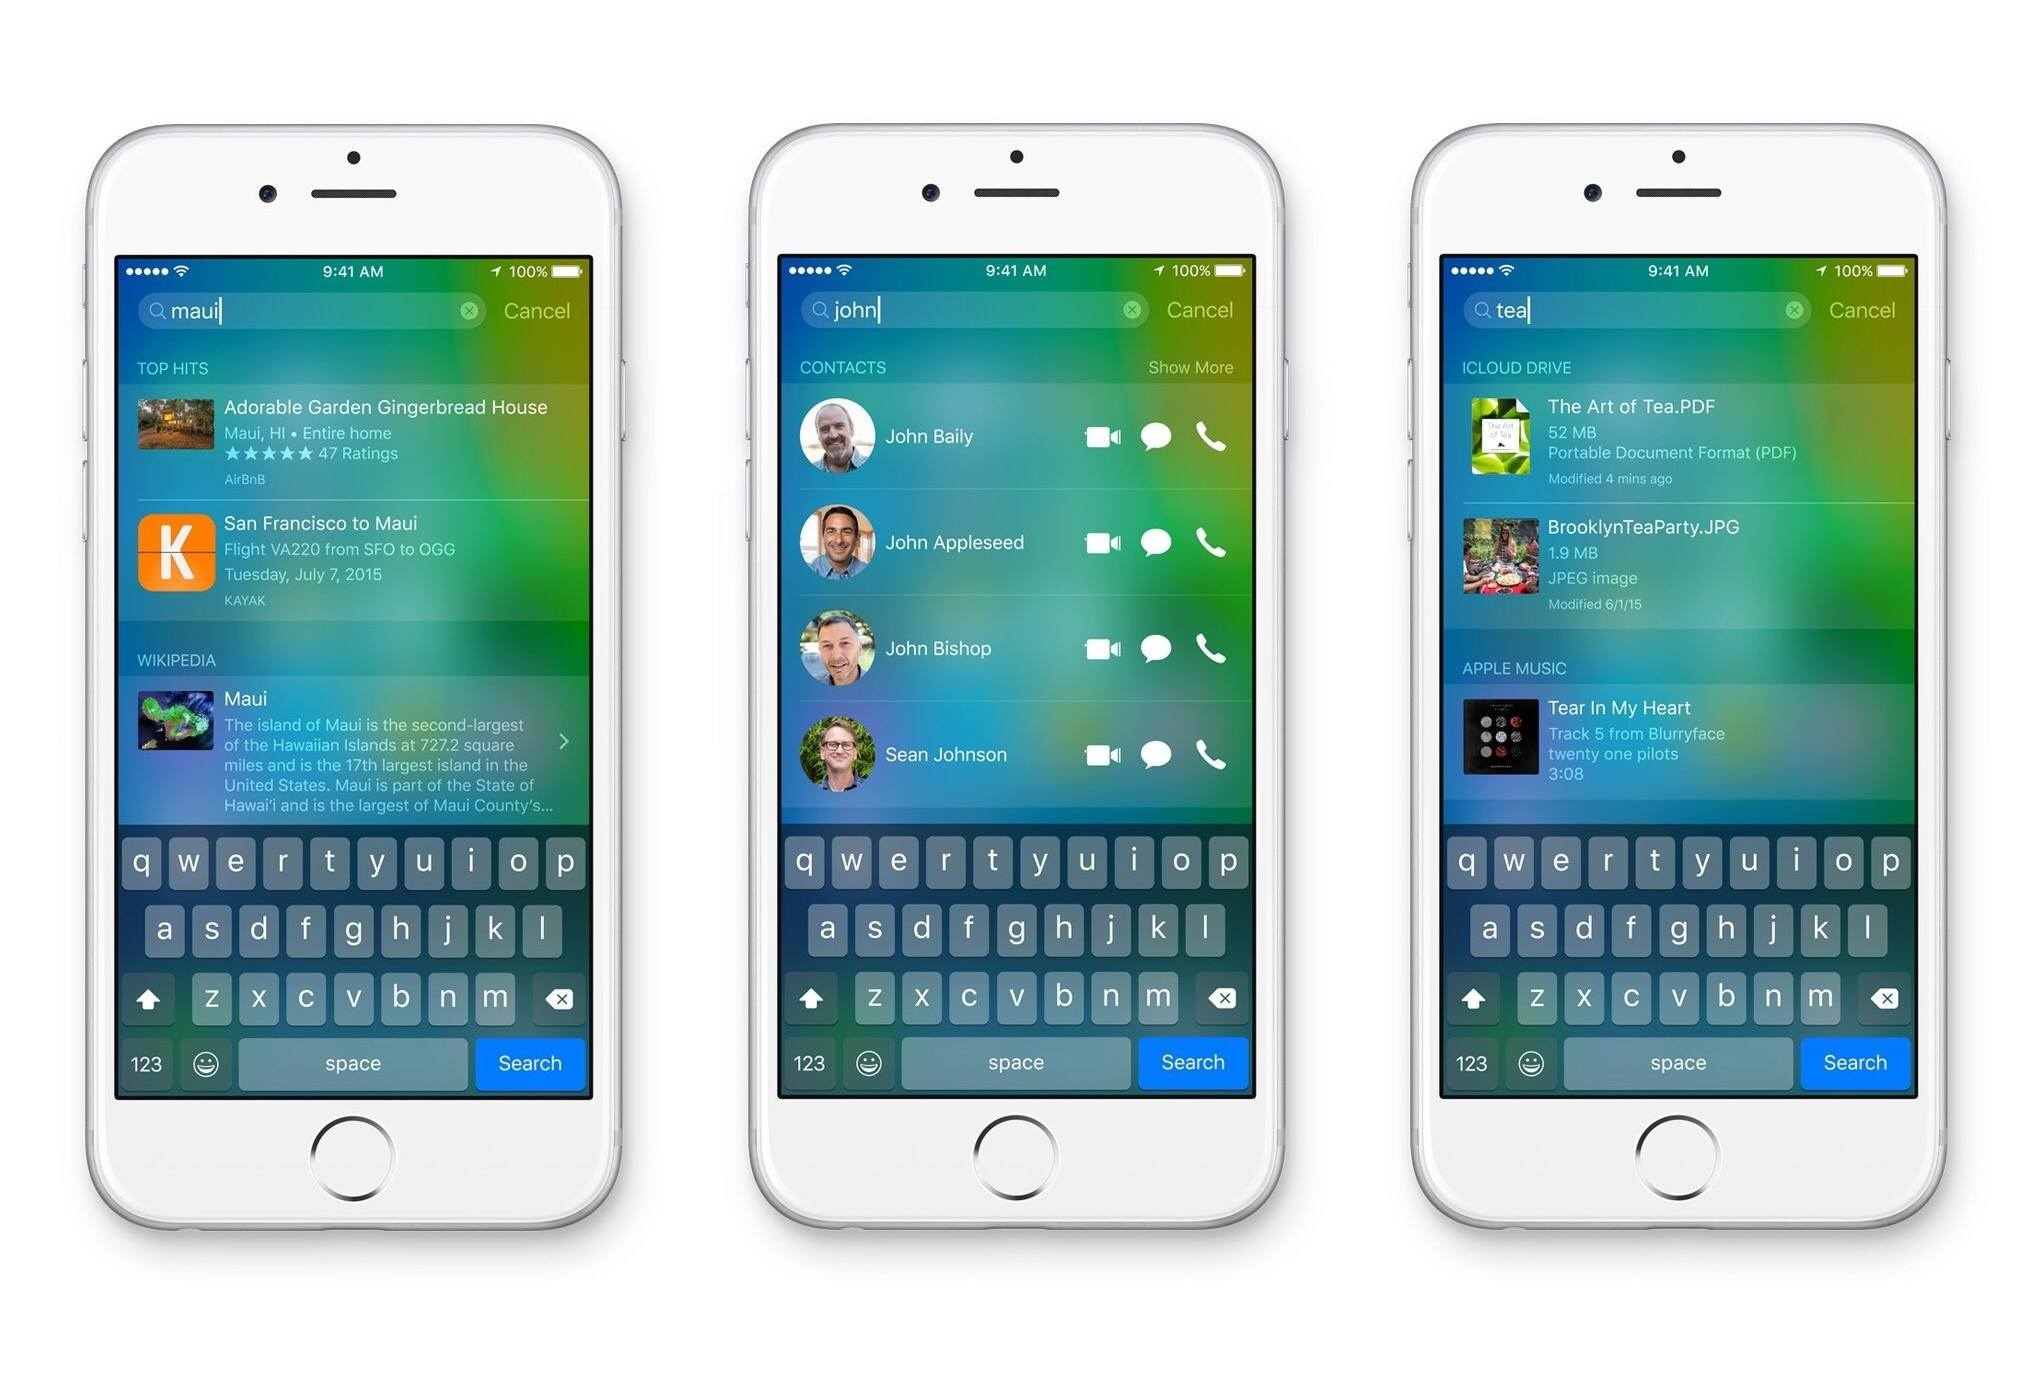 Inside iOS 9 Search: Apple's Plan for More Connected Apps